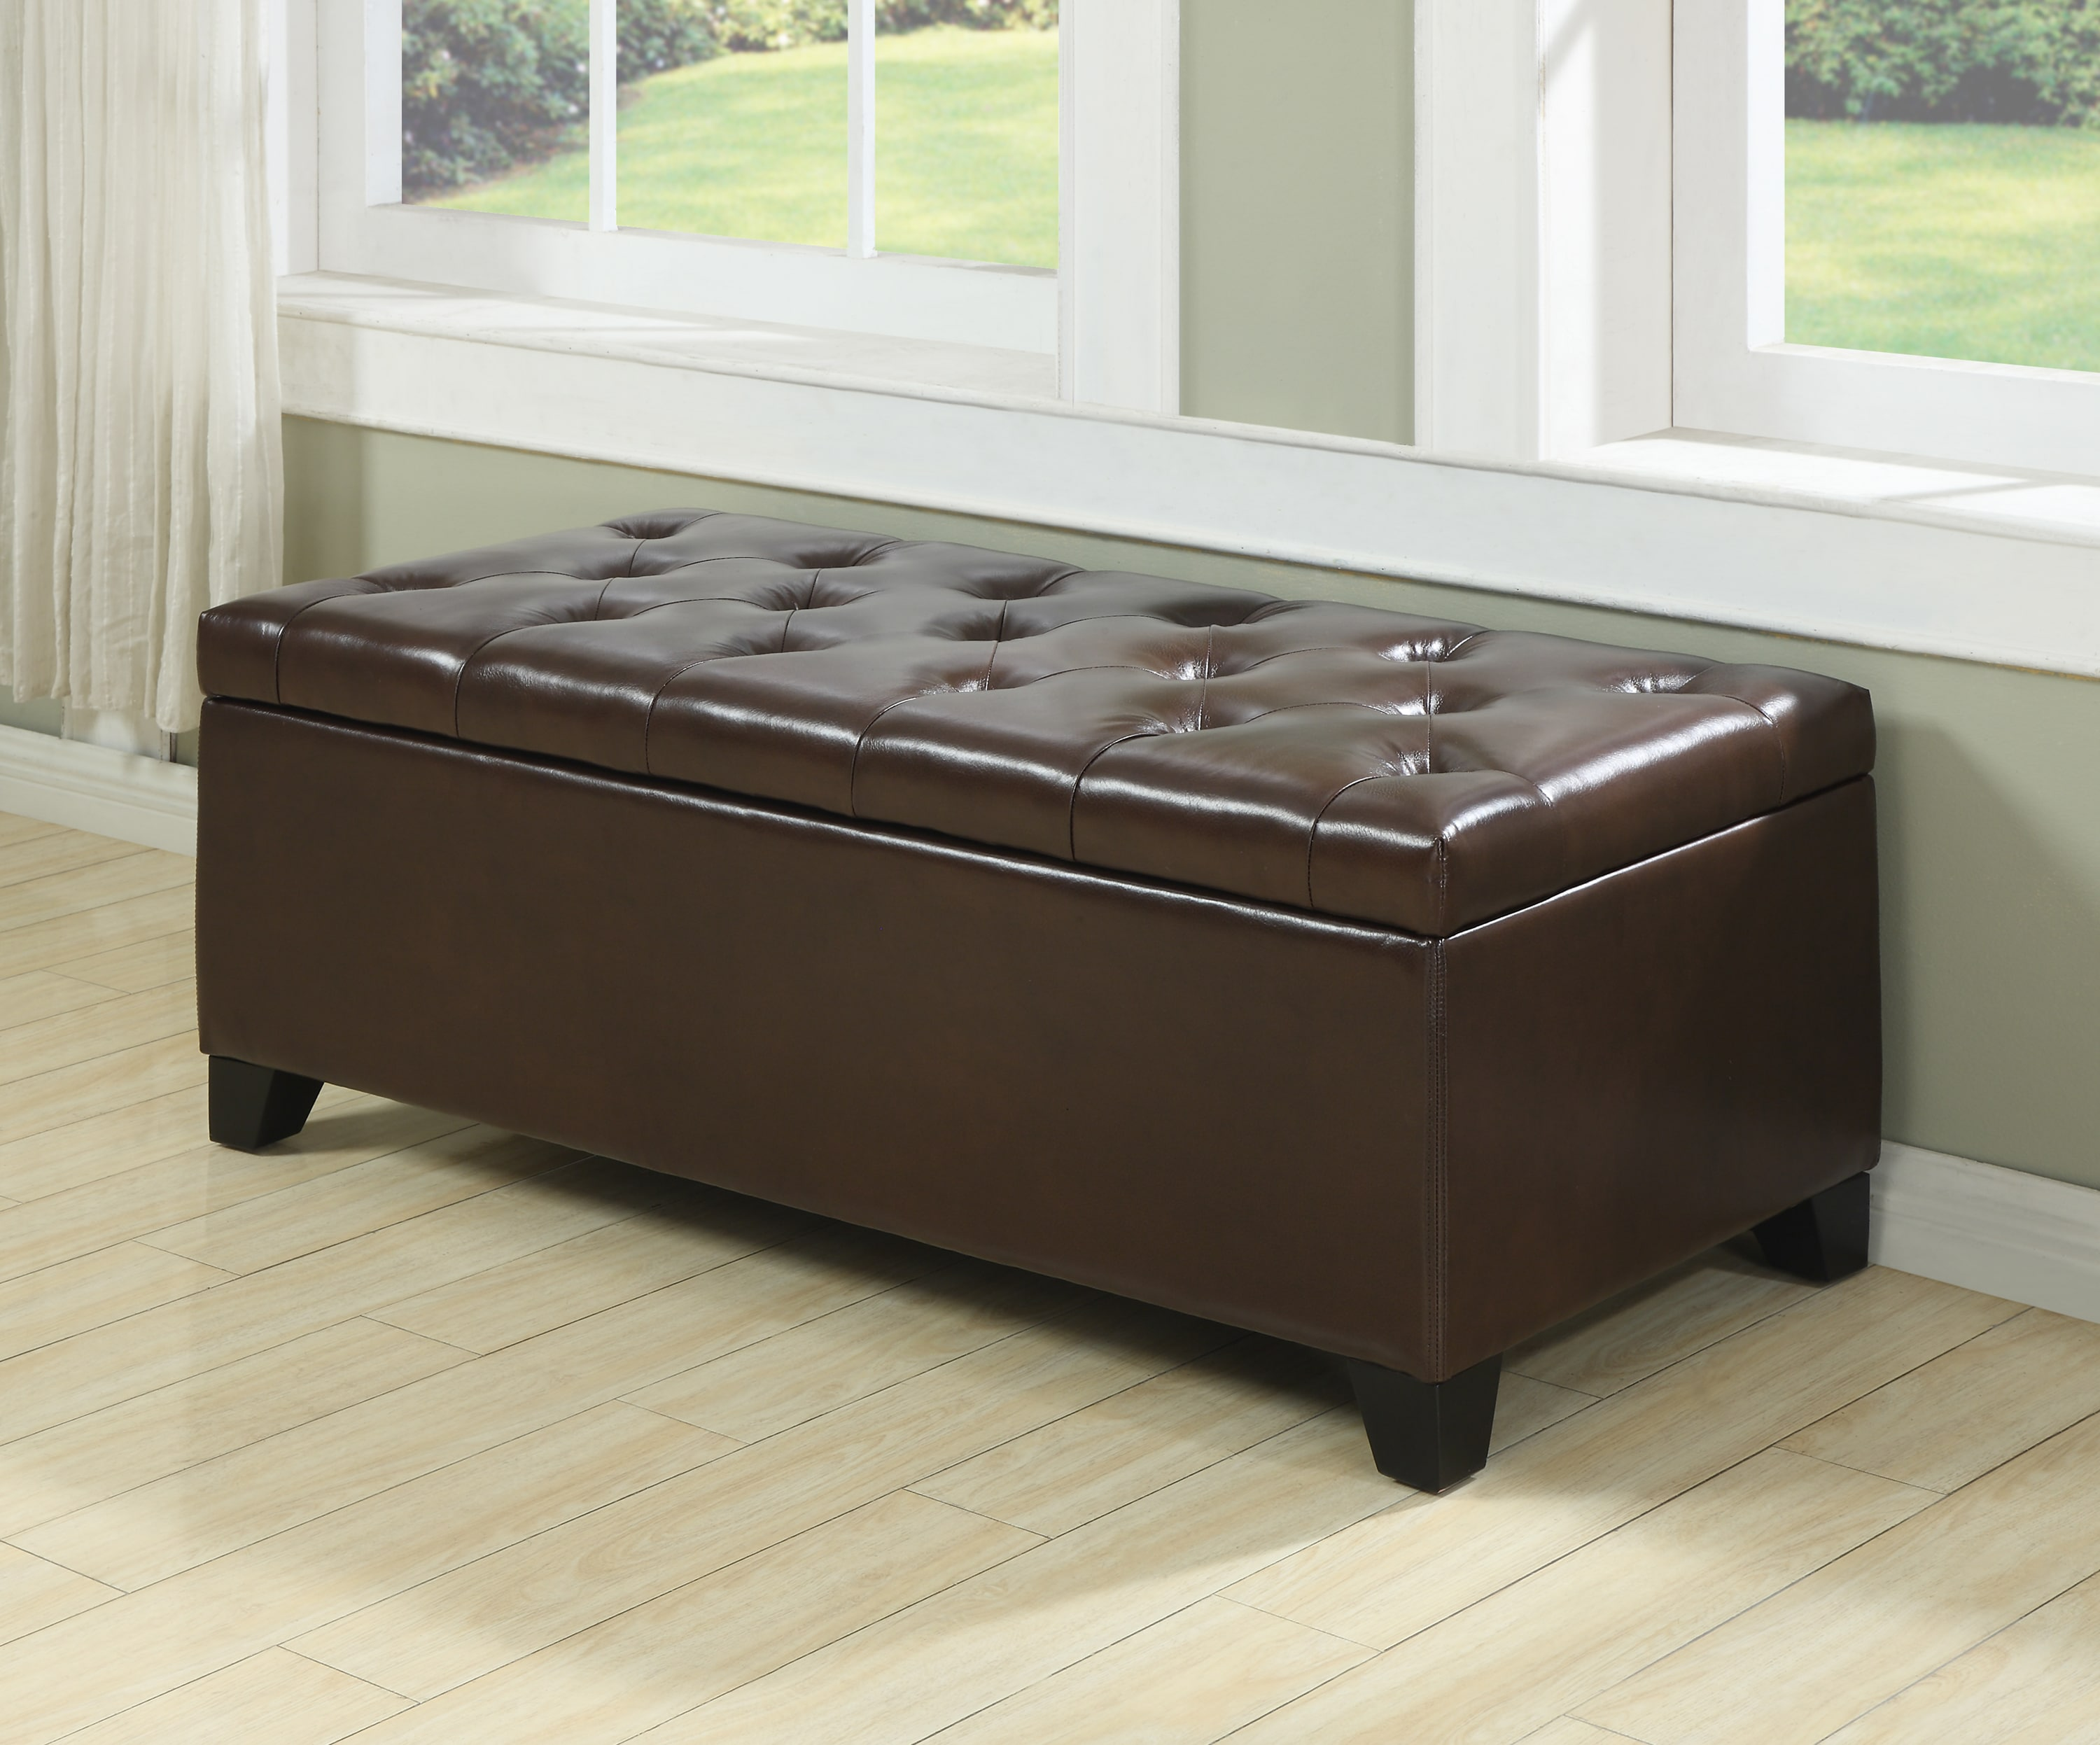 Portfolio Blane Tufted Brown Renu Leather Wall Hugger Bench Storage Ottoman at Sears.com